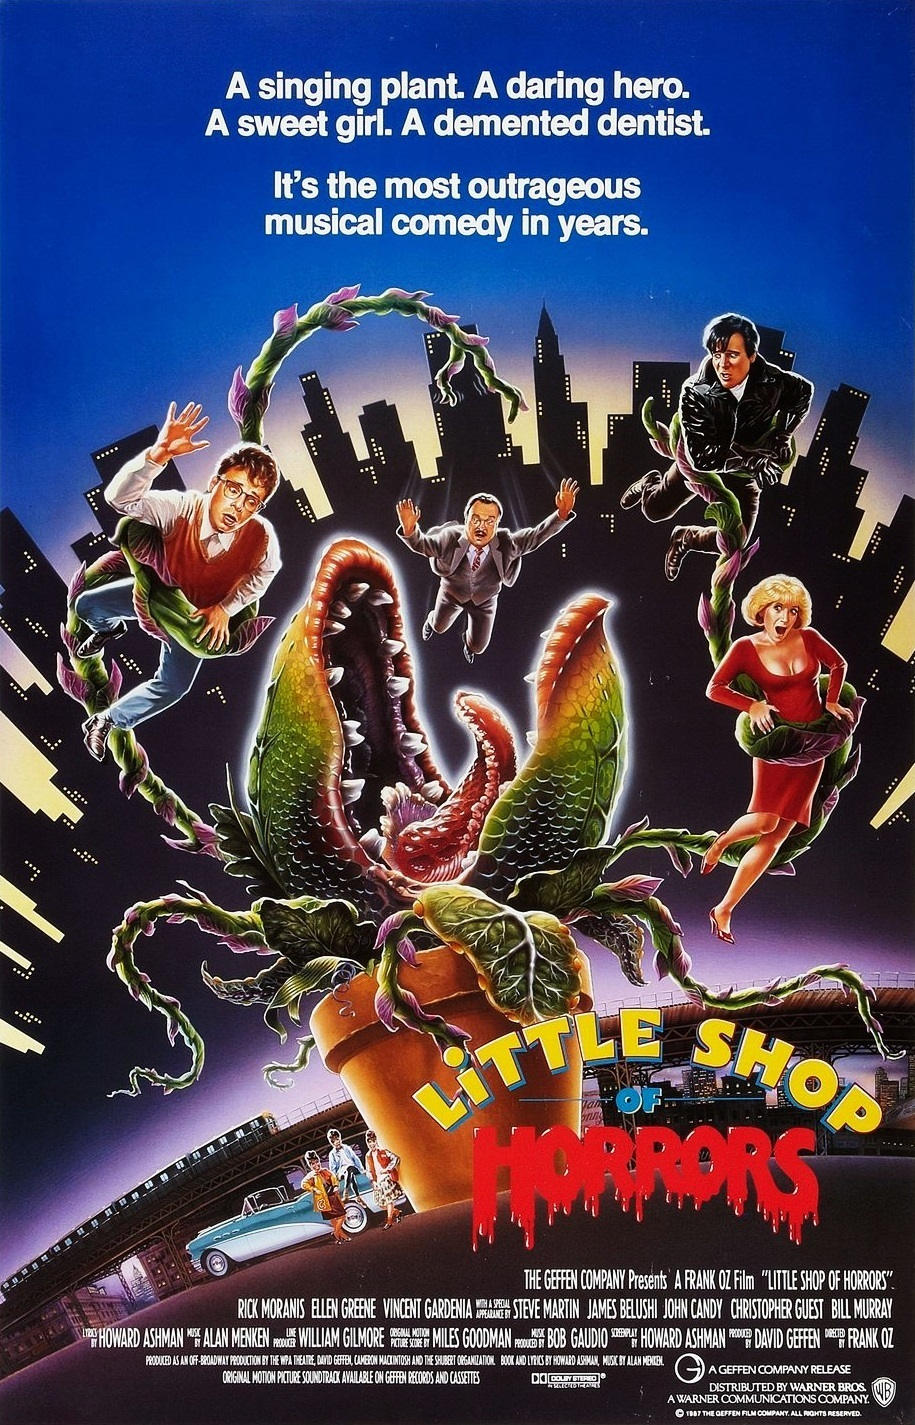 The Little Shop of Horrors (1986) - Directed by: Frank OzStarring: Rick Moranis, Ellen Greene, Vincent Gardenia, Levi Stubbs, Steve Martin, Jim Belushi, John Candy, Bill Murray, Christopher GuestRated: PG-13 for Mature Thematic Material Including Comic Horror Violence, Substance Abuse, Language and Sex ReferencesRunning Time: 1 h 34 mTMM Score: 4 stars out of 5STRENGTHS: Music, Fun, Satire, Story, RidiculousnessWEAKNESSES: Target Audience (?)